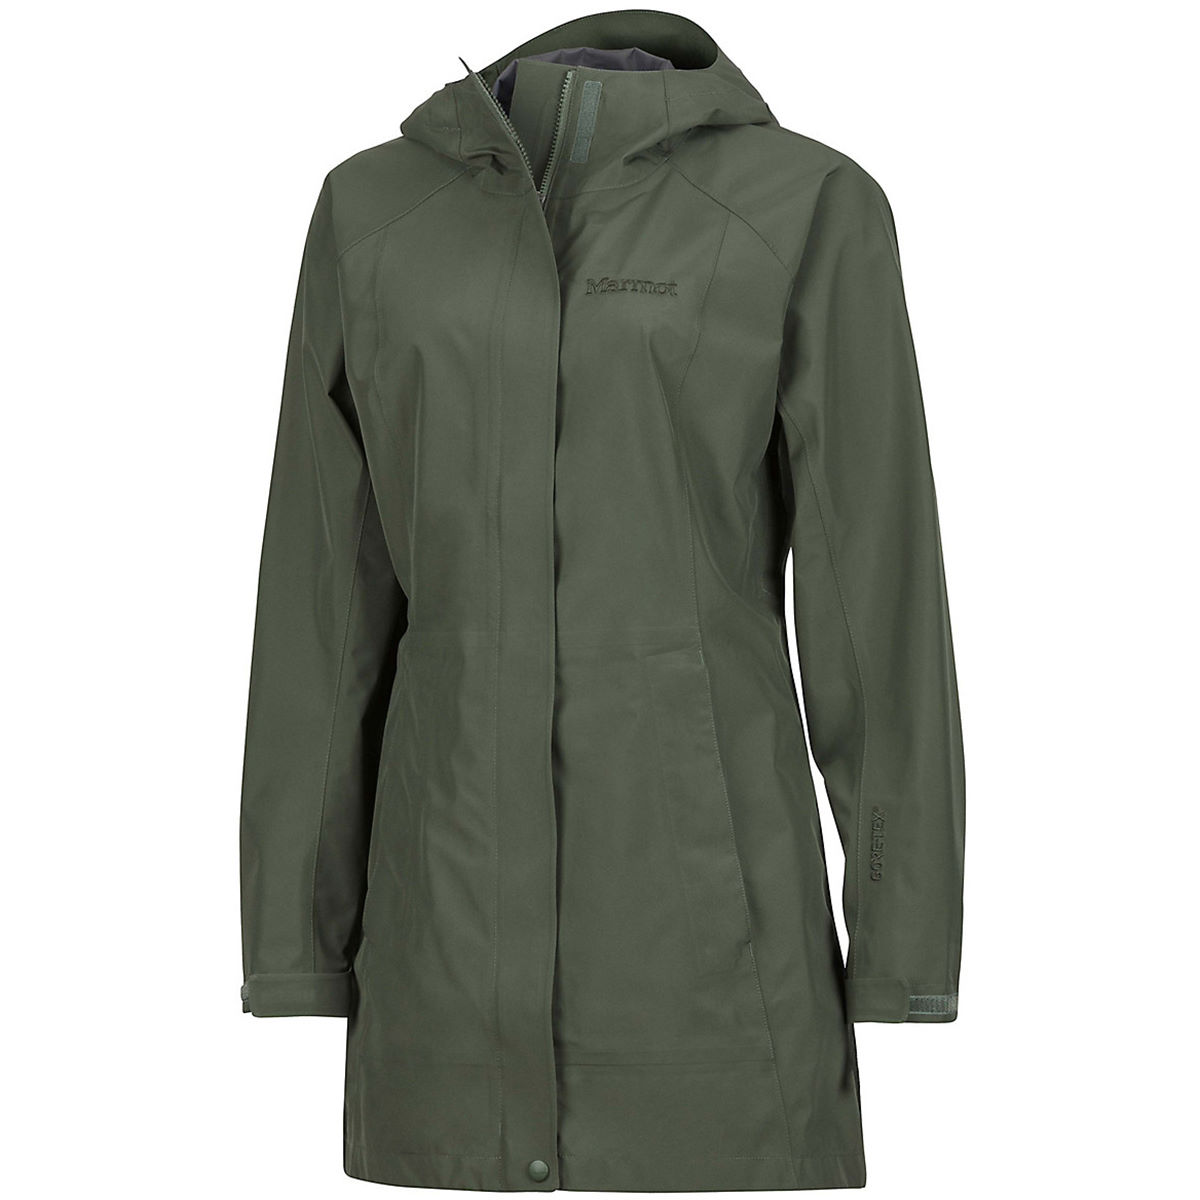 Marmot Marmot Womens Essential Jacket   Jackets